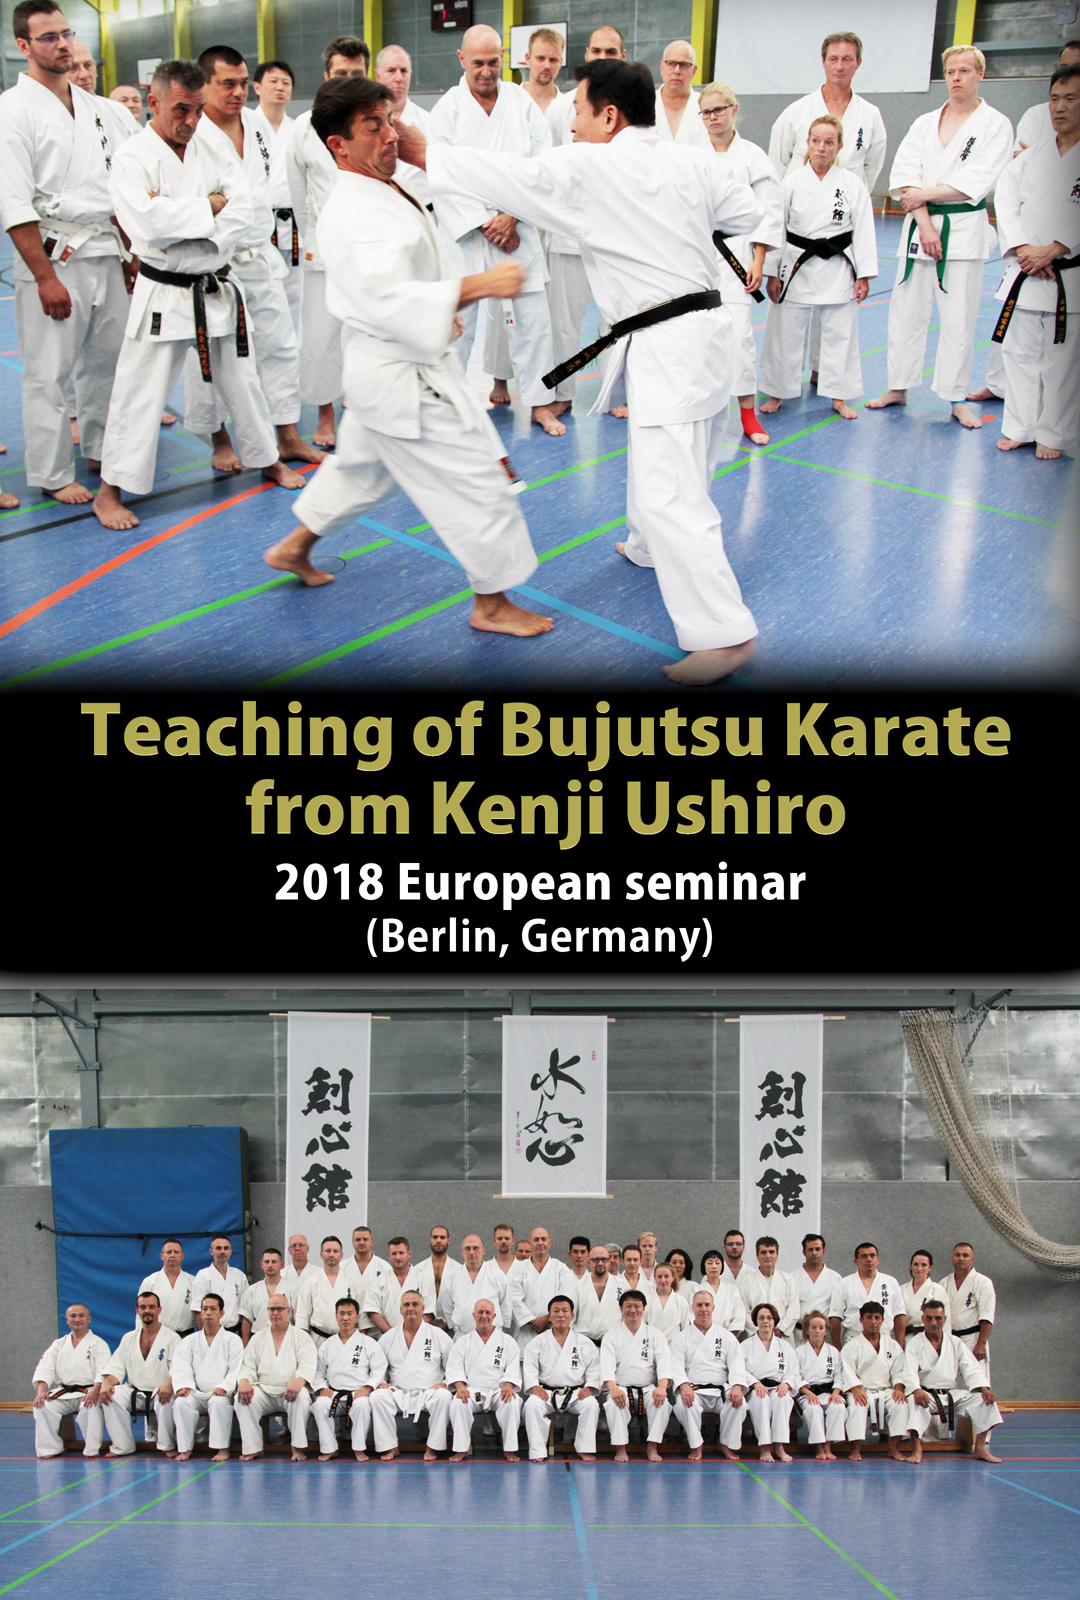 Teaching of Bujutsu Karate from Kenji Ushiro (2018 European seminar)